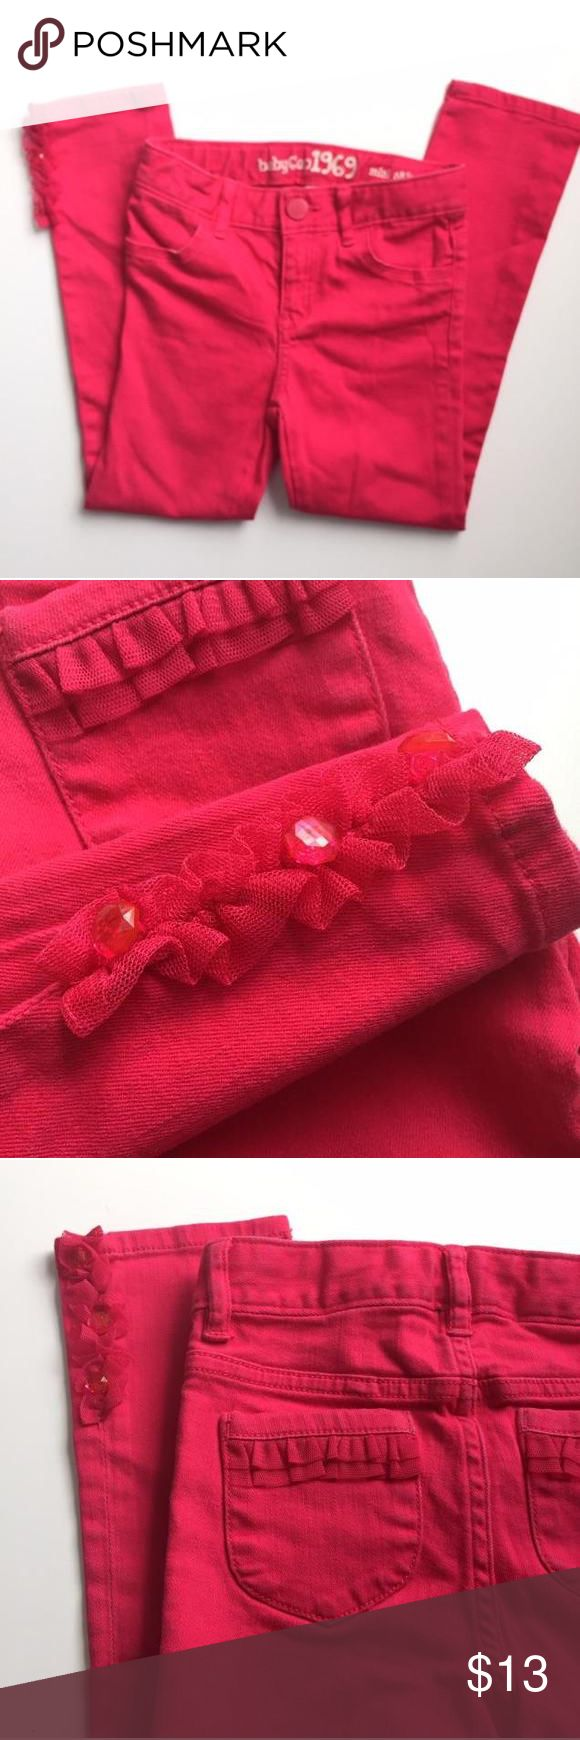 Gap Skinny Jeans Pink with ruffles sz 5 Gap Skinny Jeans. Hot pink color with ruffles on back pockets and tulle and sparkle at the ankles. Sz 5 GAP Bottoms Jeans